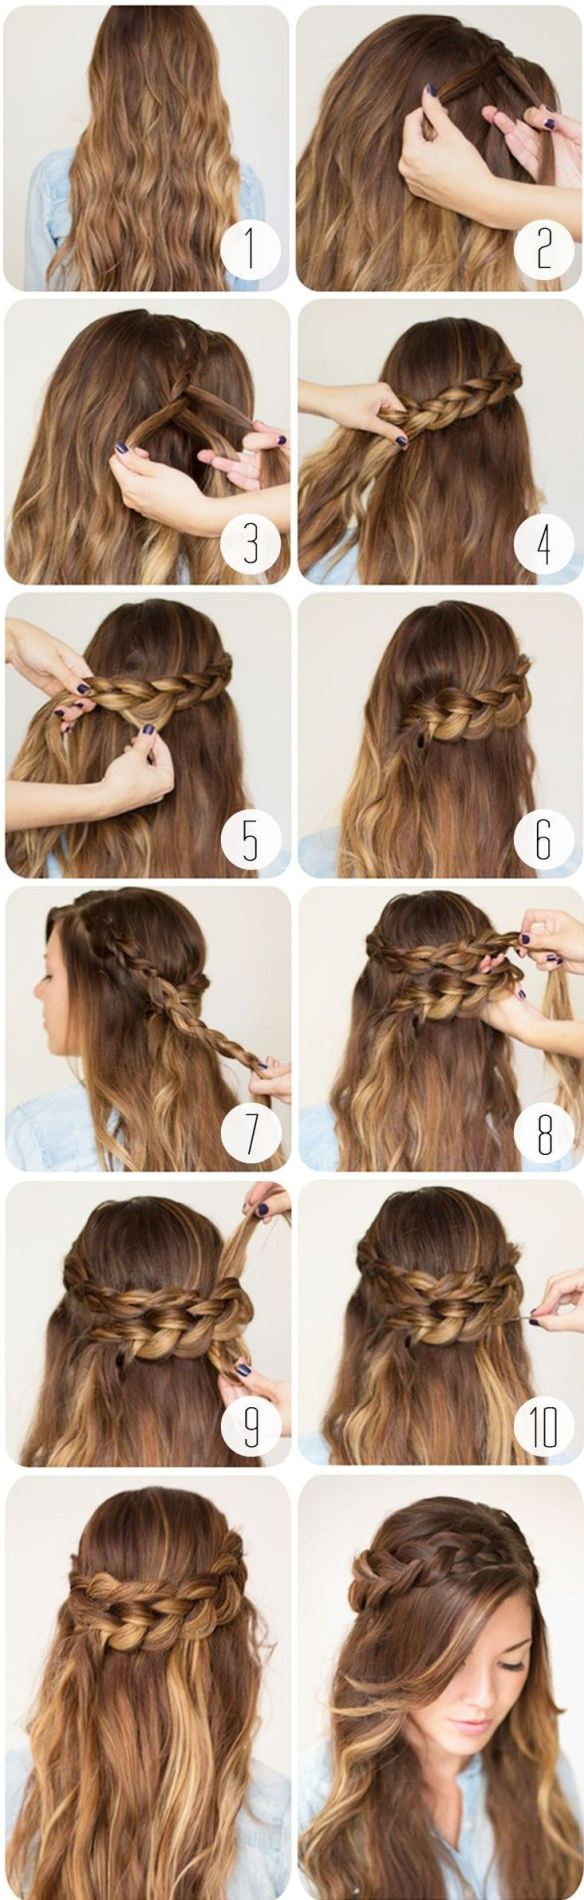 Step by step braided hair tutorials exercises and diet pinterest